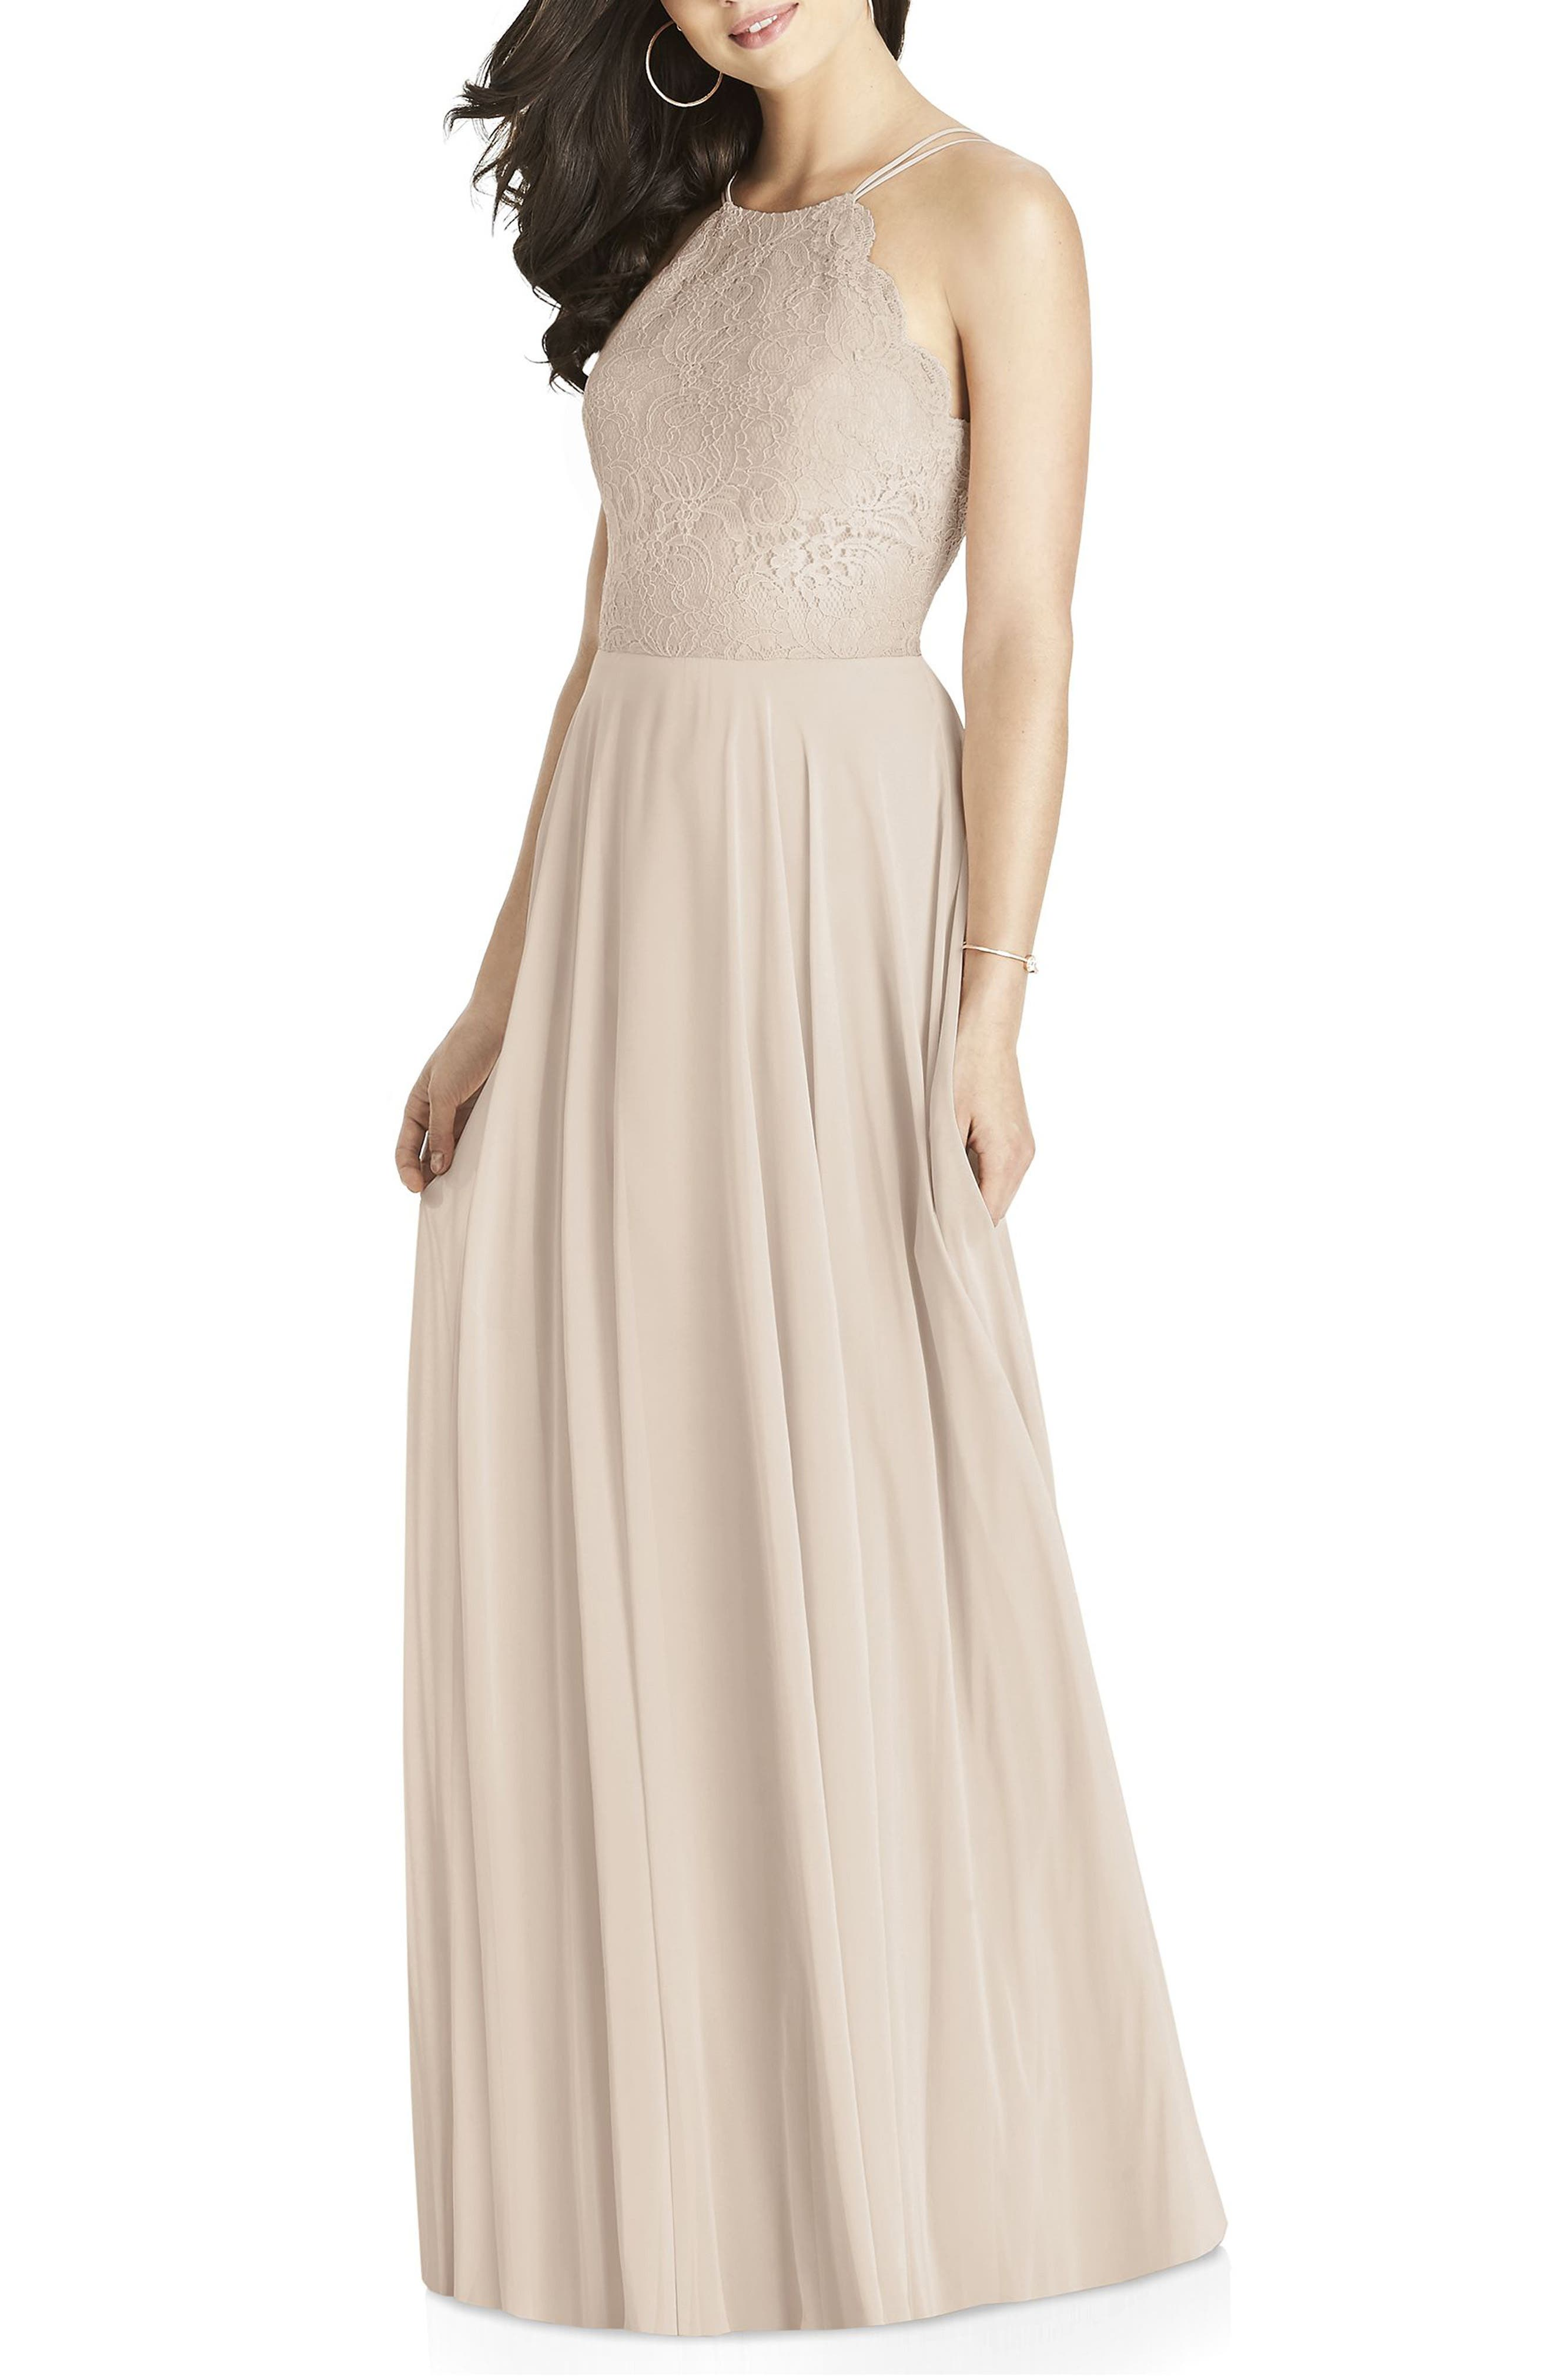 DESSY COLLECTION, Lace & Chiffon Halter Gown, Main thumbnail 1, color, CAMEO